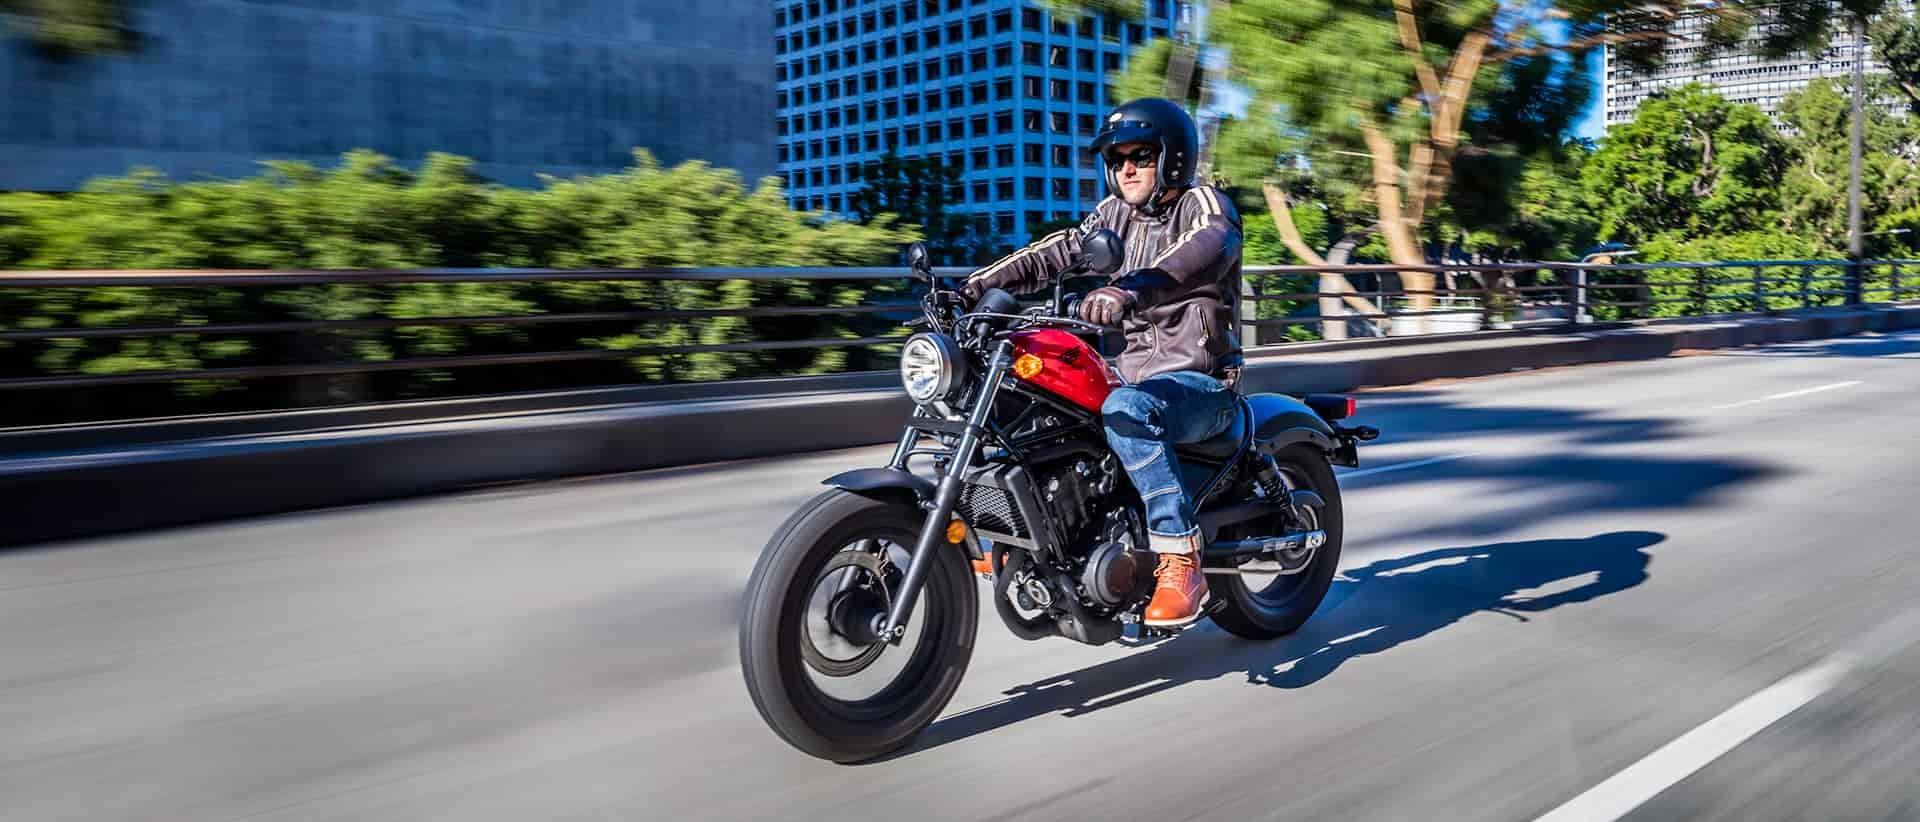 Honda Motorcycles | Available at Ohio Cycleworx